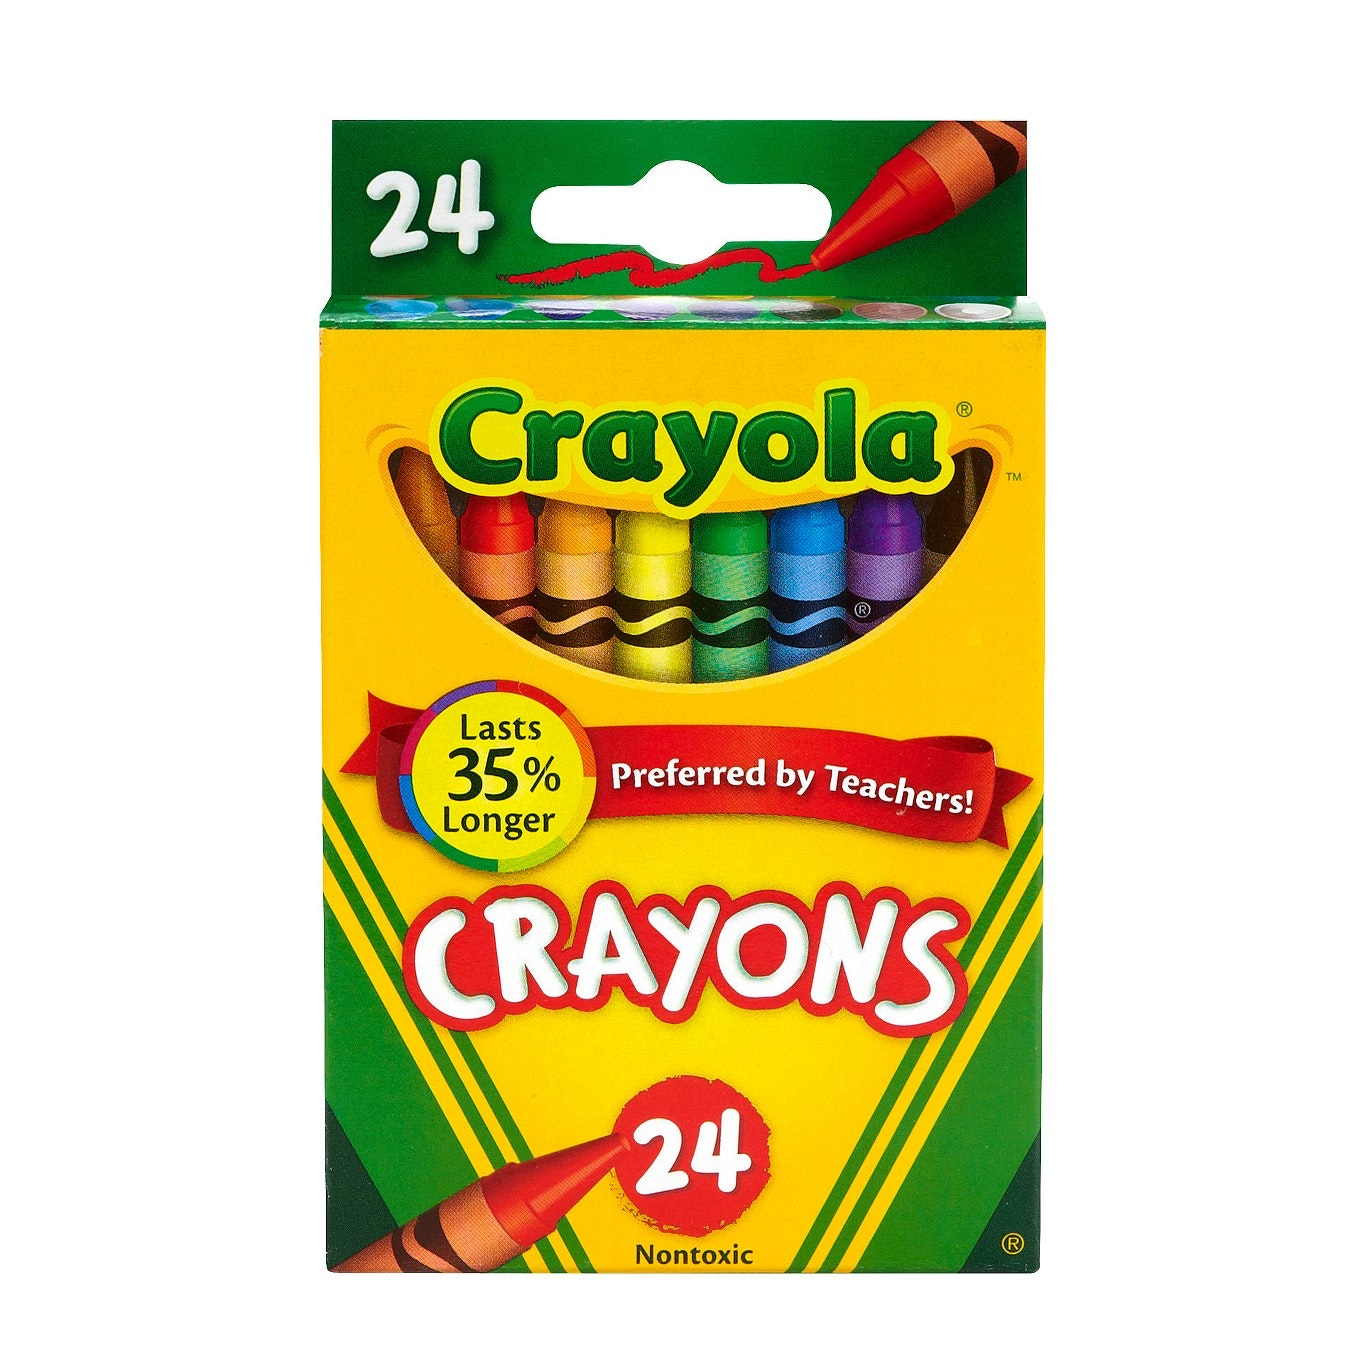 This set of classic Crayola crayons